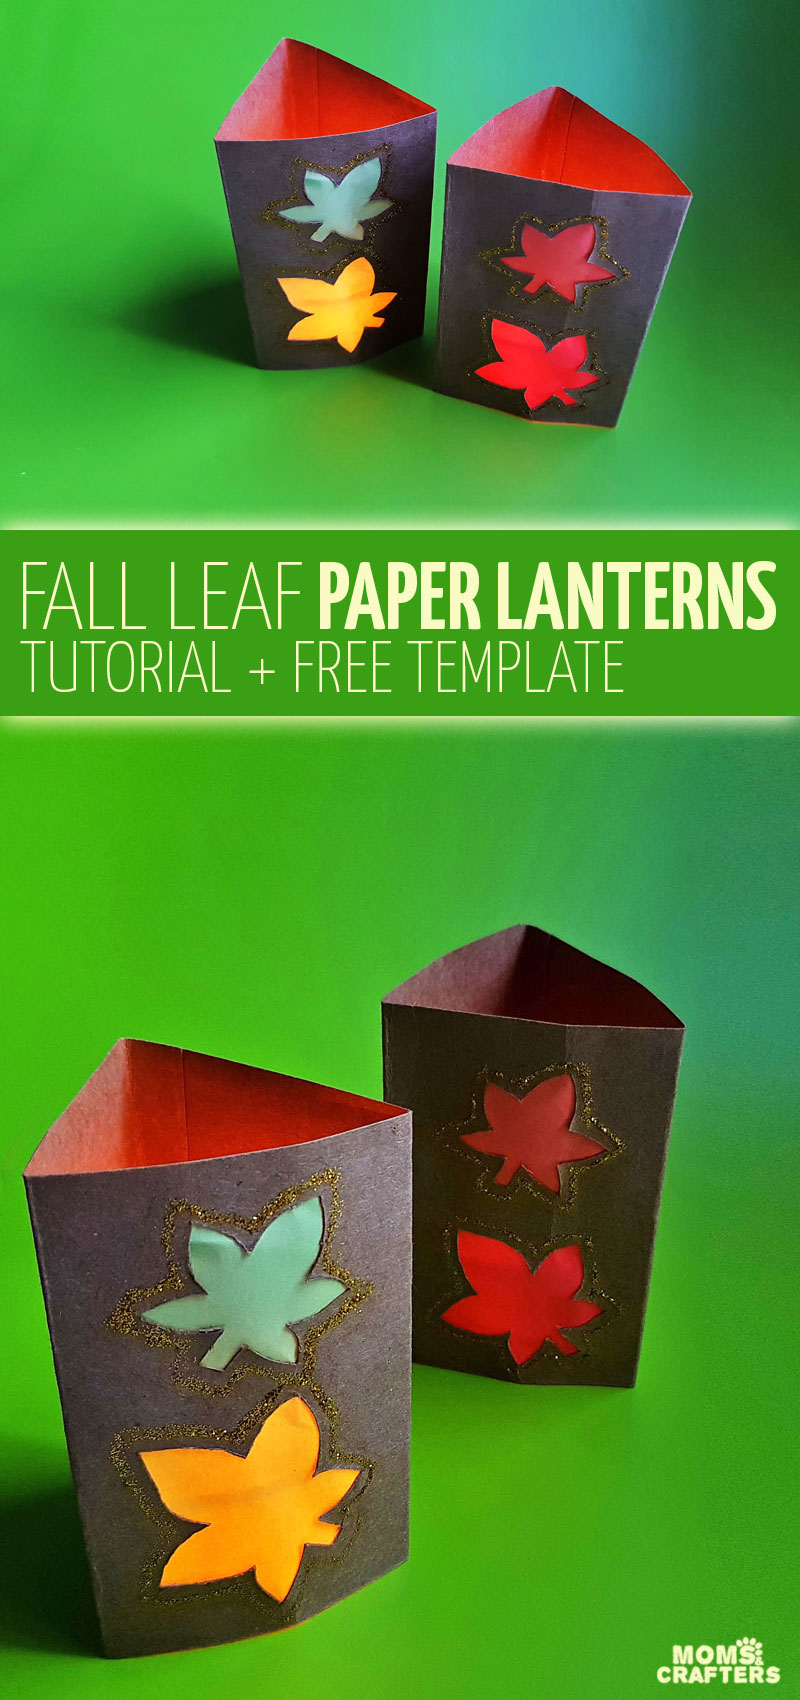 Click for a free printable template to make DIY fall luminaries and autumn paper lanterns! This paper cutting tutorial and template for fall is so easy and makes a great sukkah decoration and centerpiece too!